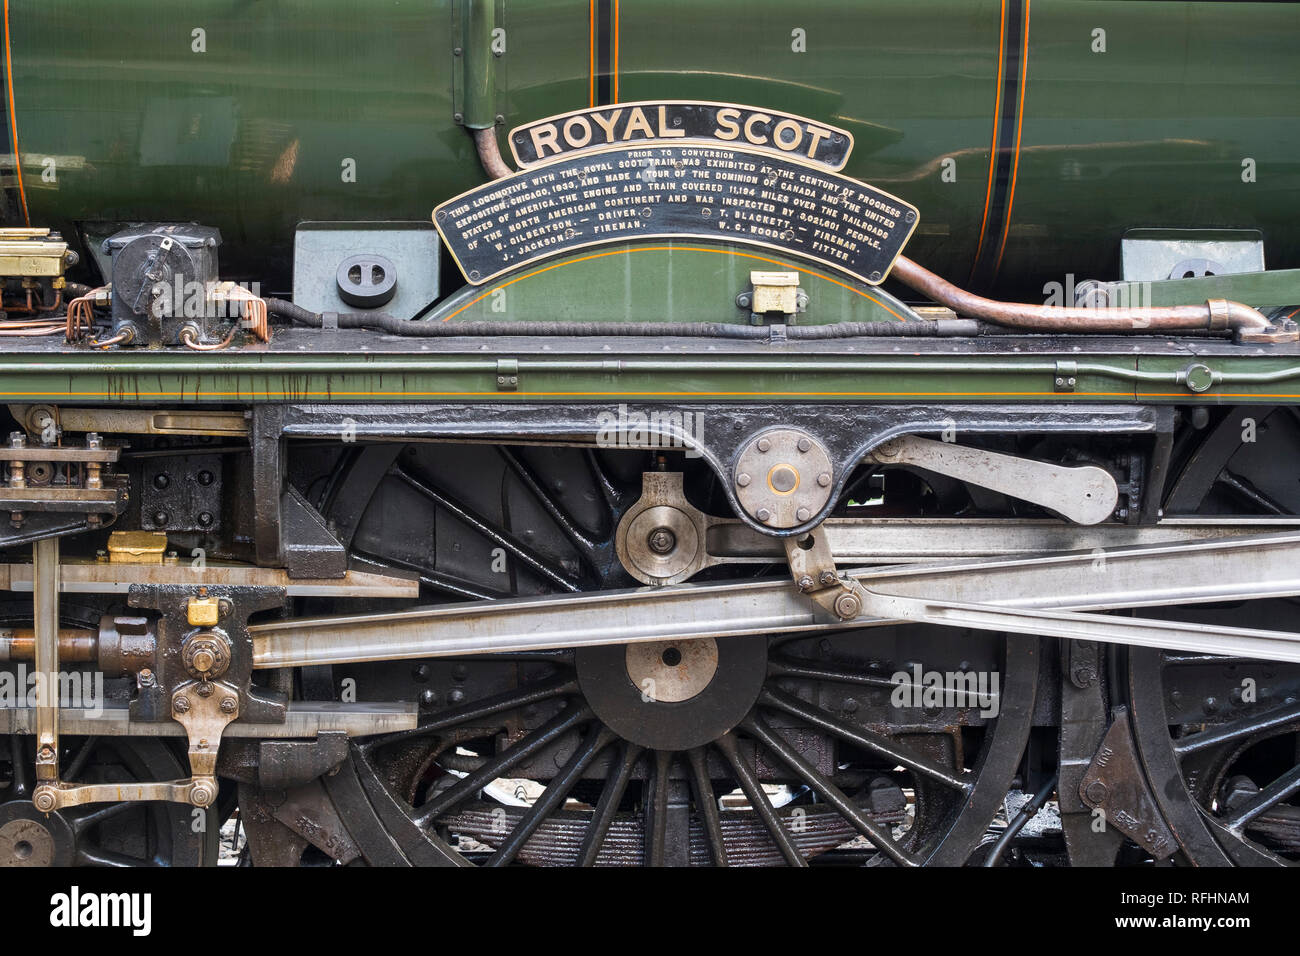 Wheels and connecting rods of the Royal Scot locomotive pictured at Highley station on the Severn Valley Railway, Shropshire, England, UK - Stock Image